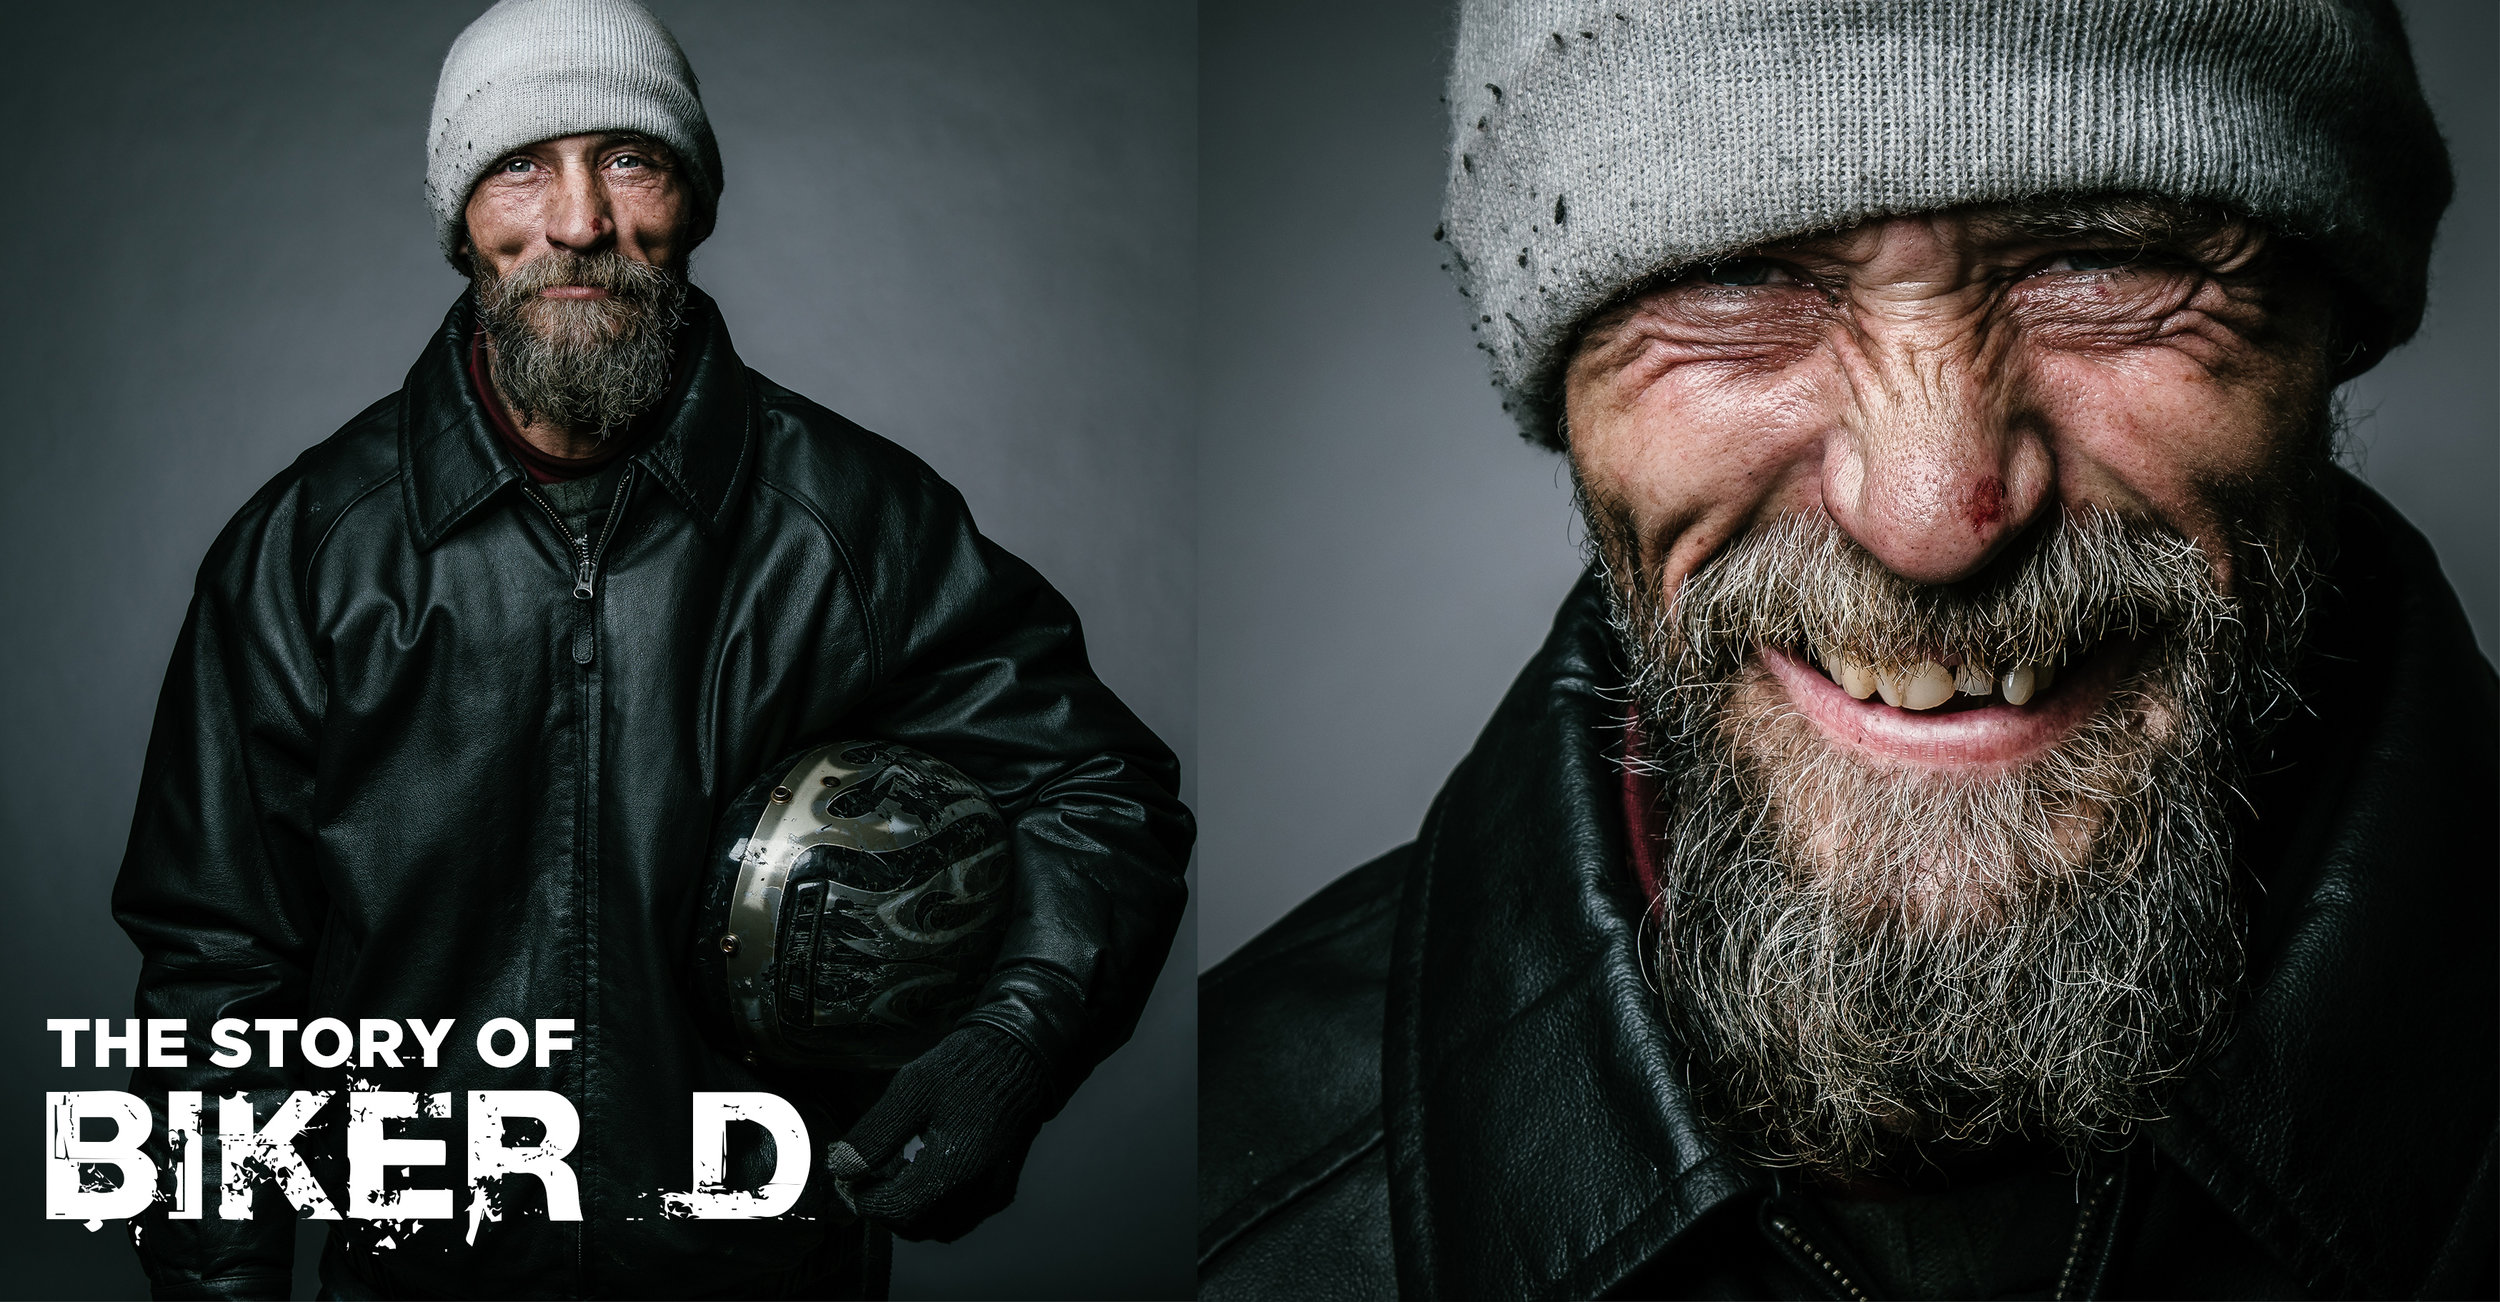 Biker D, 7 billion ones, the road i call home, randy bacon, homeless, homelessness, gathering friends